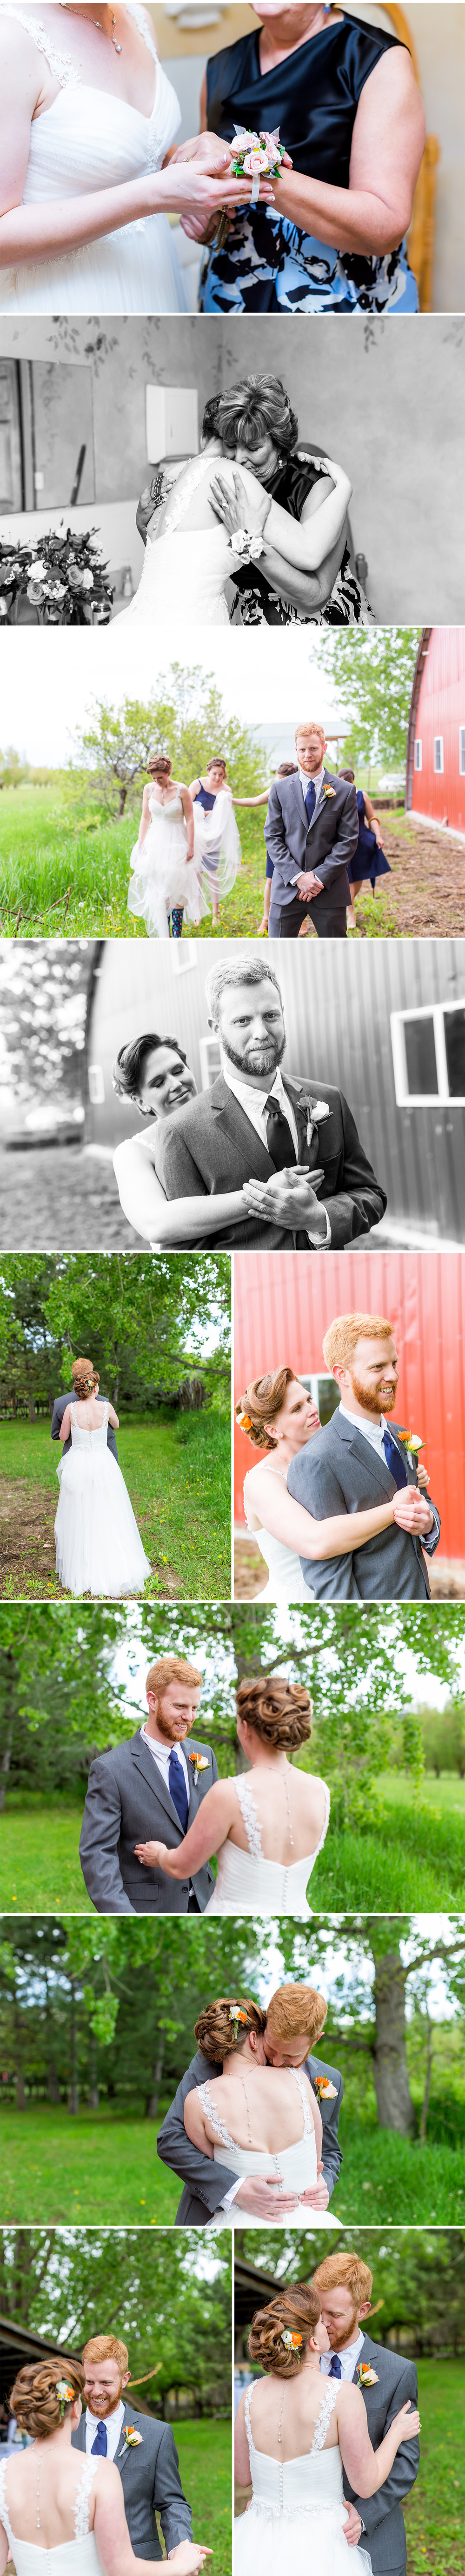 4 Longmont Wedding Photography.jpg